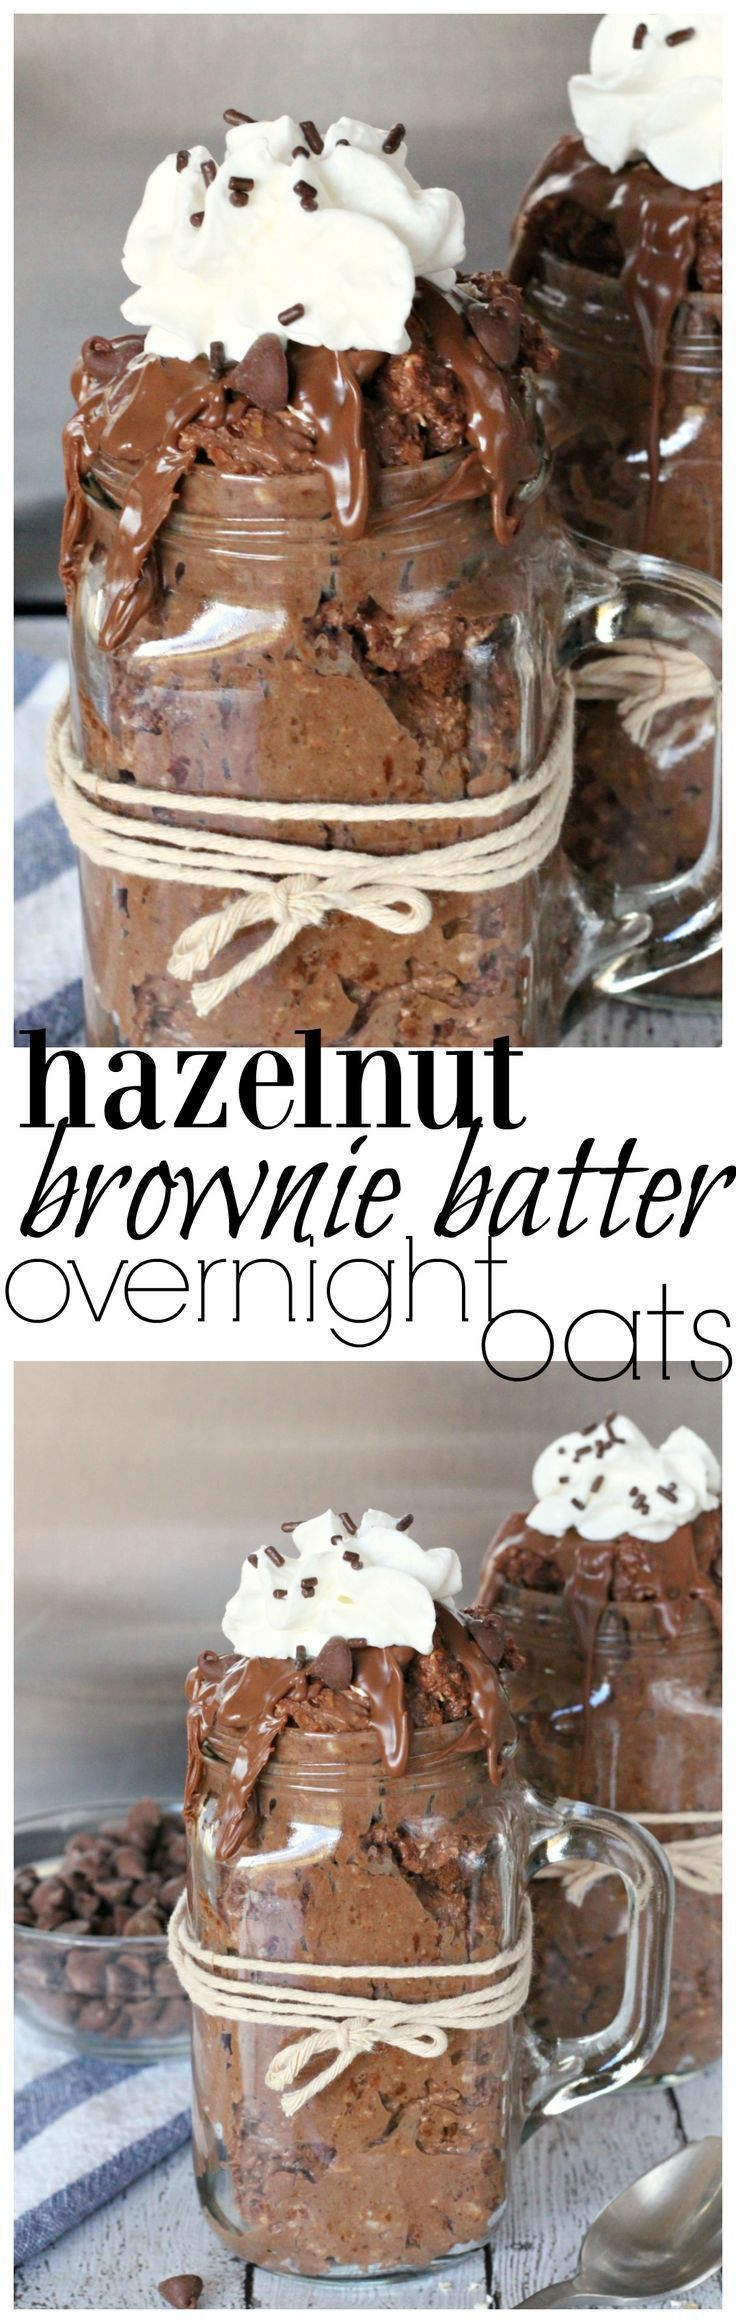 Hazelnut brownie-flavored overnight oats that are ready for you first thing in the morning.